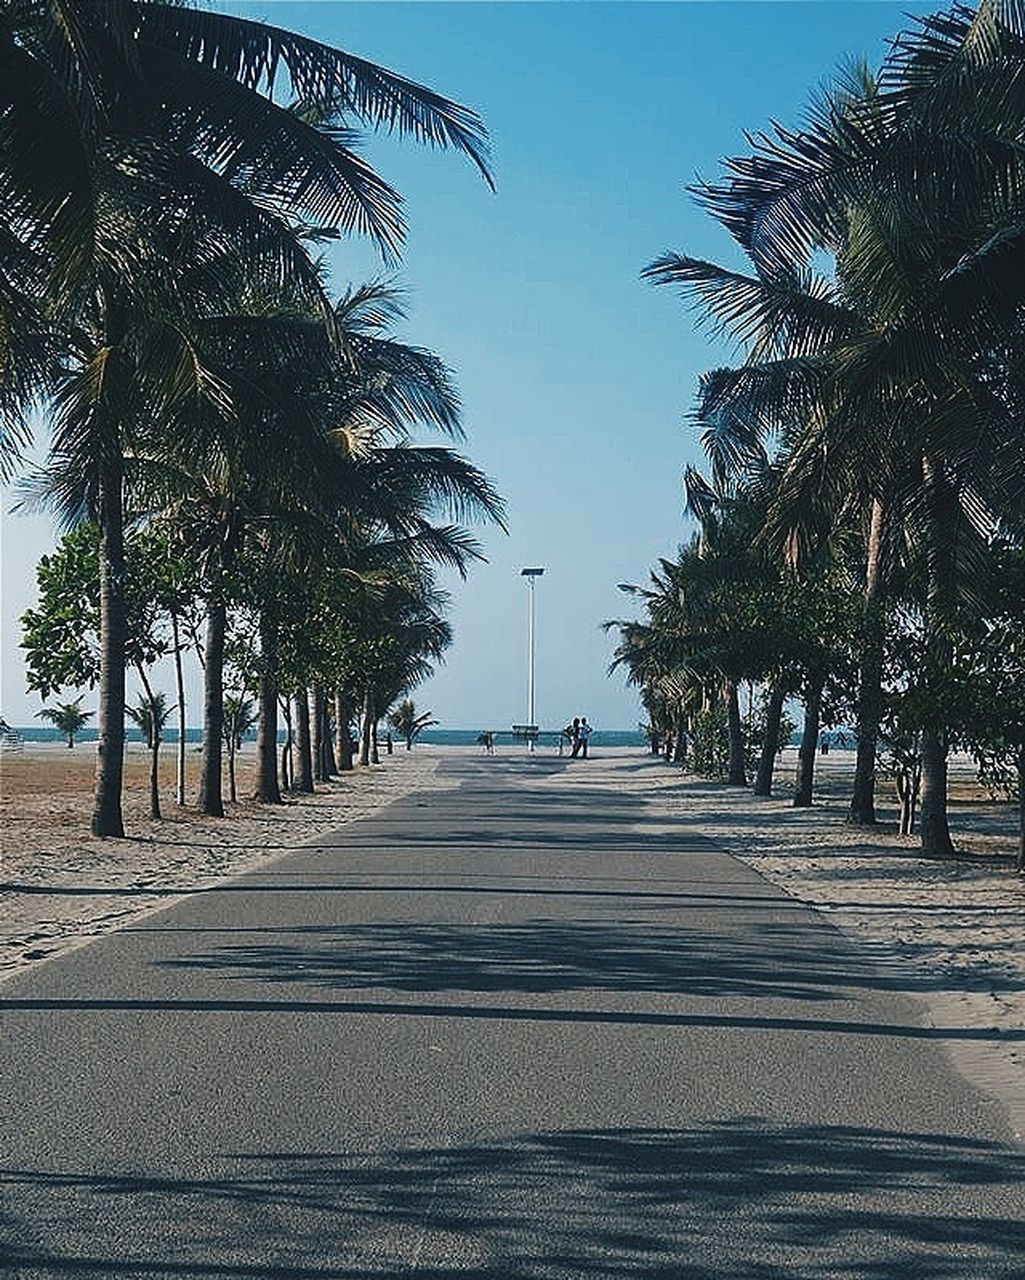 palm tree, tree, the way forward, road, outdoors, street, clear sky, beach, sky, transportation, day, no people, shadow, blue, scenics, nature, sea, beauty in nature, water